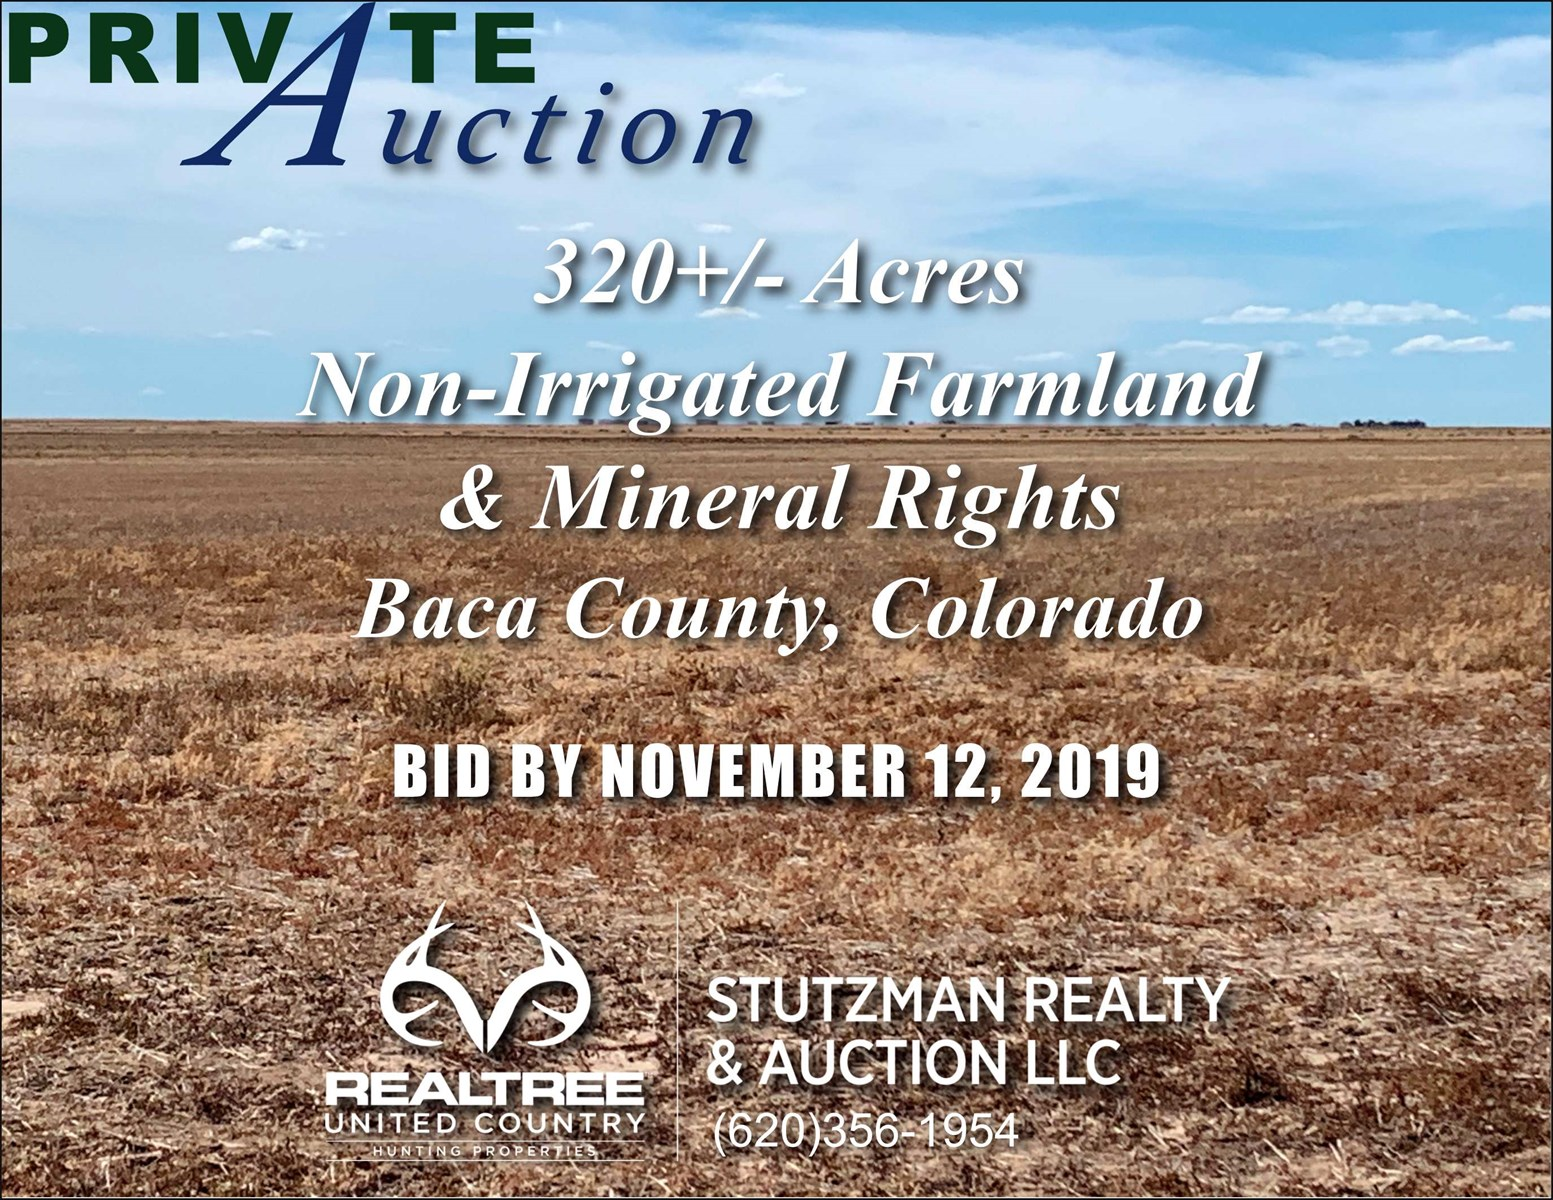 BACA COUNTY COLORADO 320+/-ACRES FARM/MINERAL RIGHTS PRIVATE AUCTION